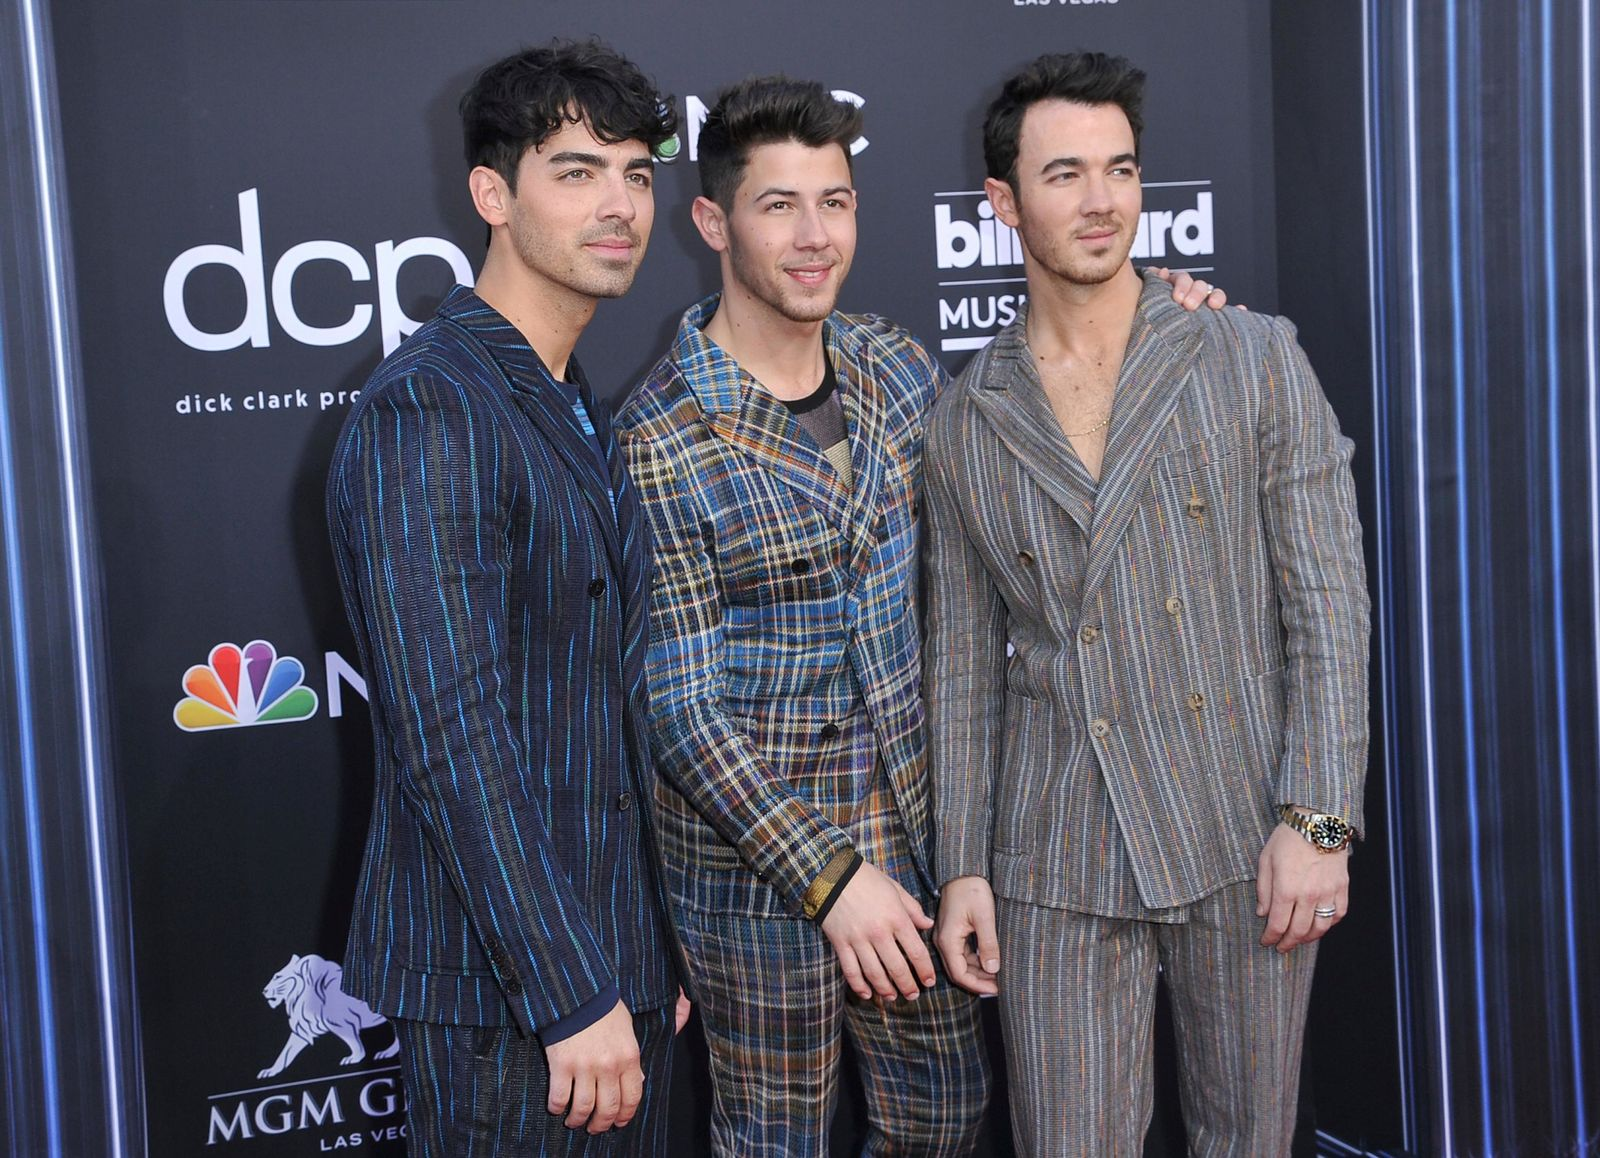 Joe Jonas, from left, Nick Jonas, and Kevin Jonas, of Jonas Brothers, arrive at the Billboard Music Awards on Wednesday, May 1, 2019, at the MGM Grand Garden Arena in Las Vegas. (Photo by Richard Shotwell/Invision/AP)